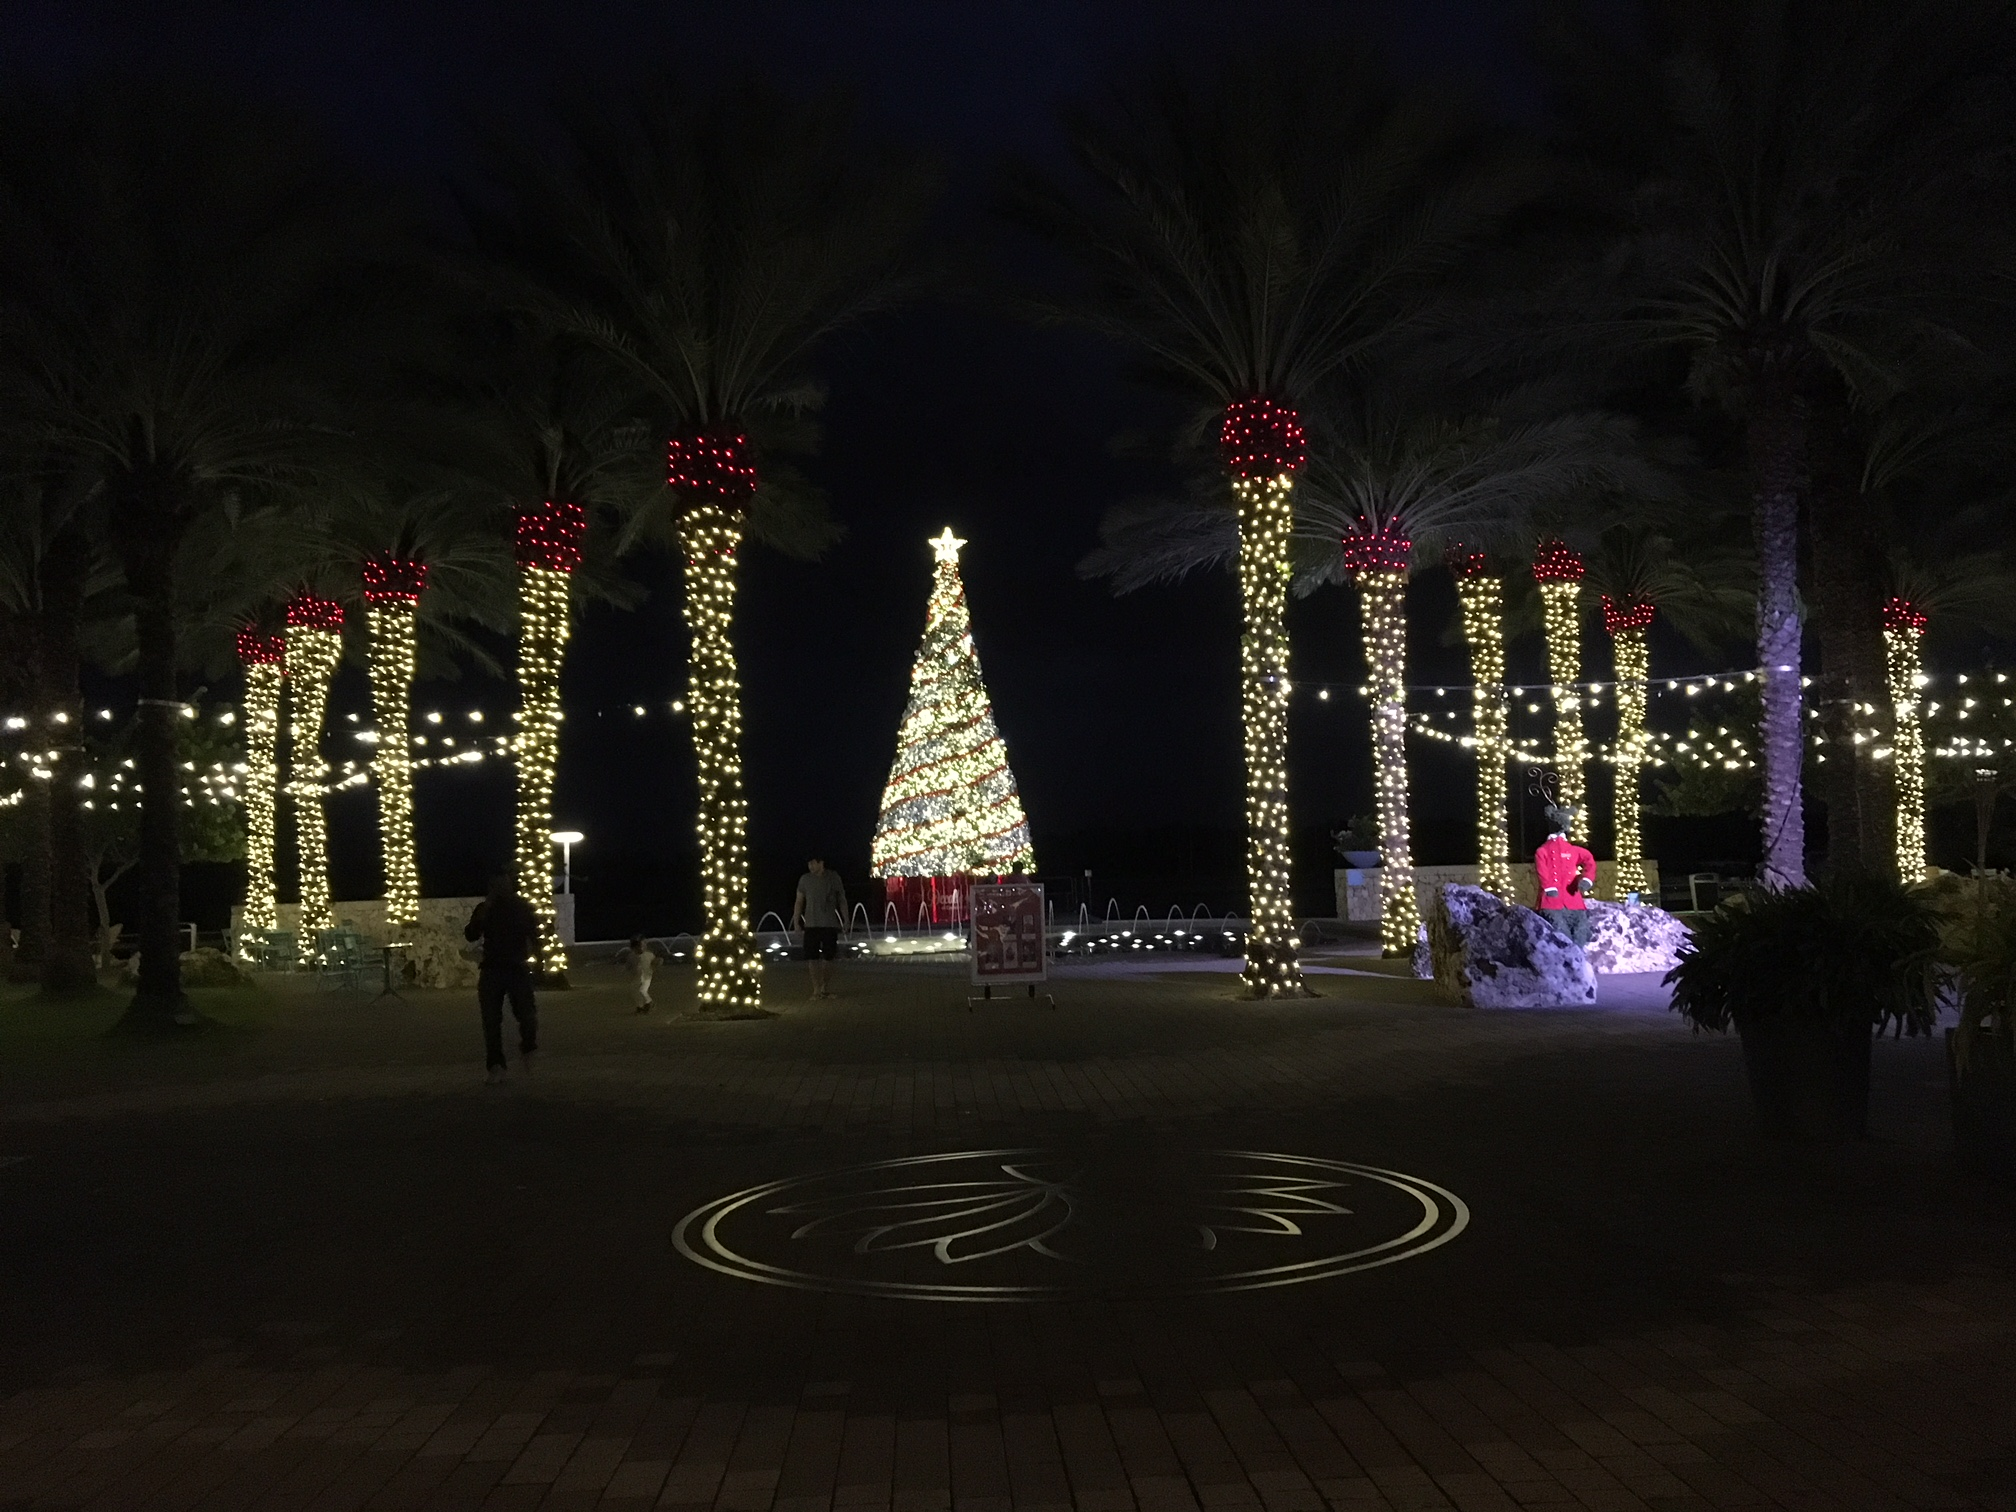 Camana Bay during the holidays